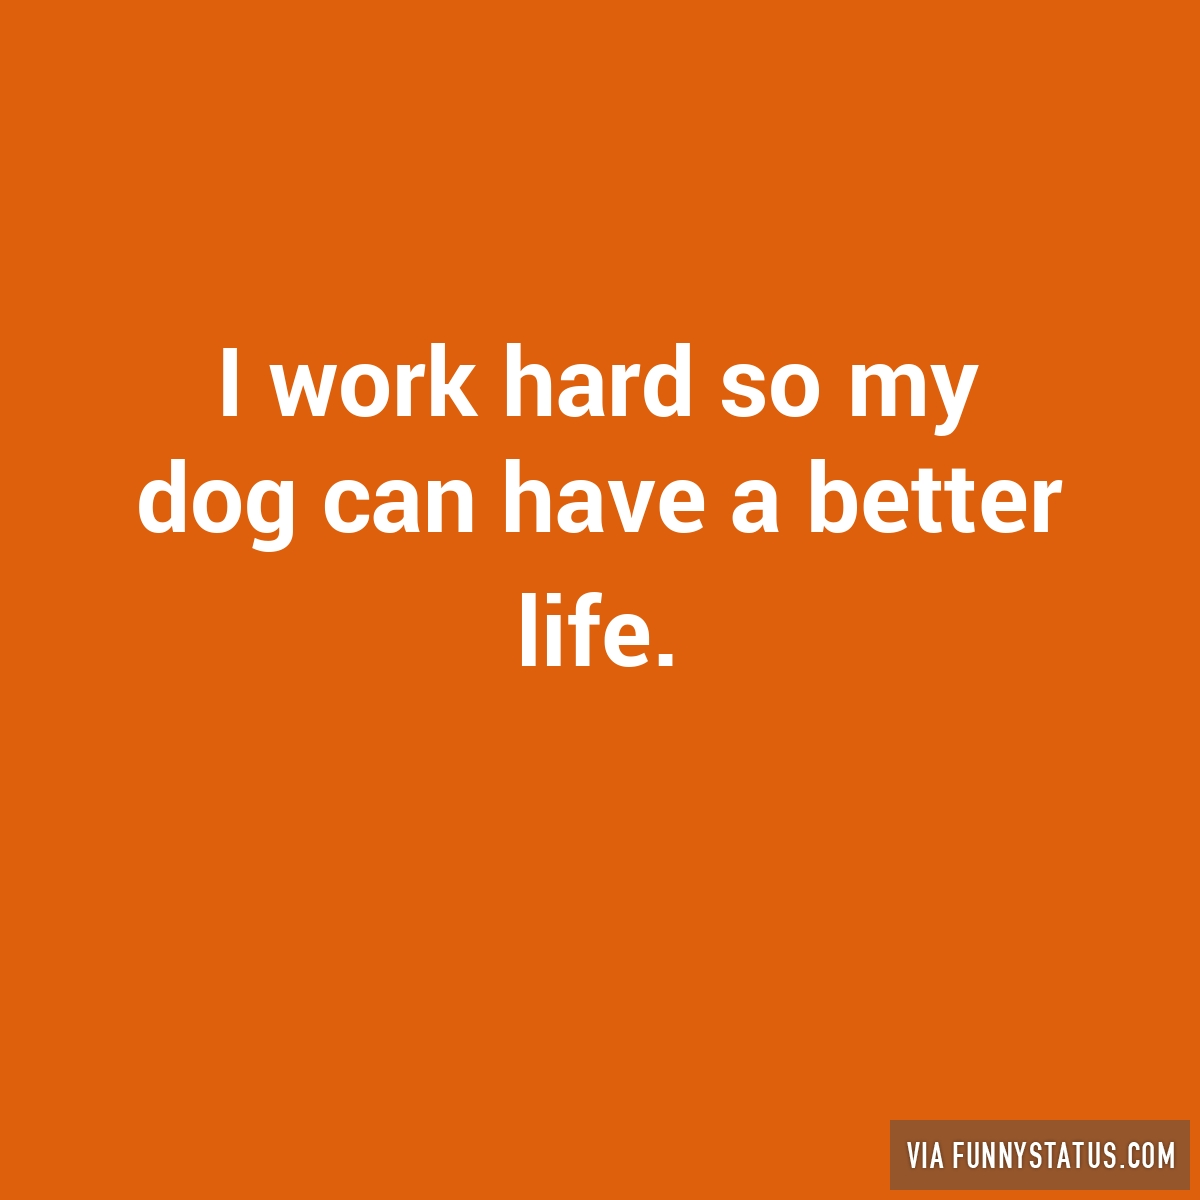 i work hard so my dog can have a better life 3021 i work hard so my dog can have a better life funny status